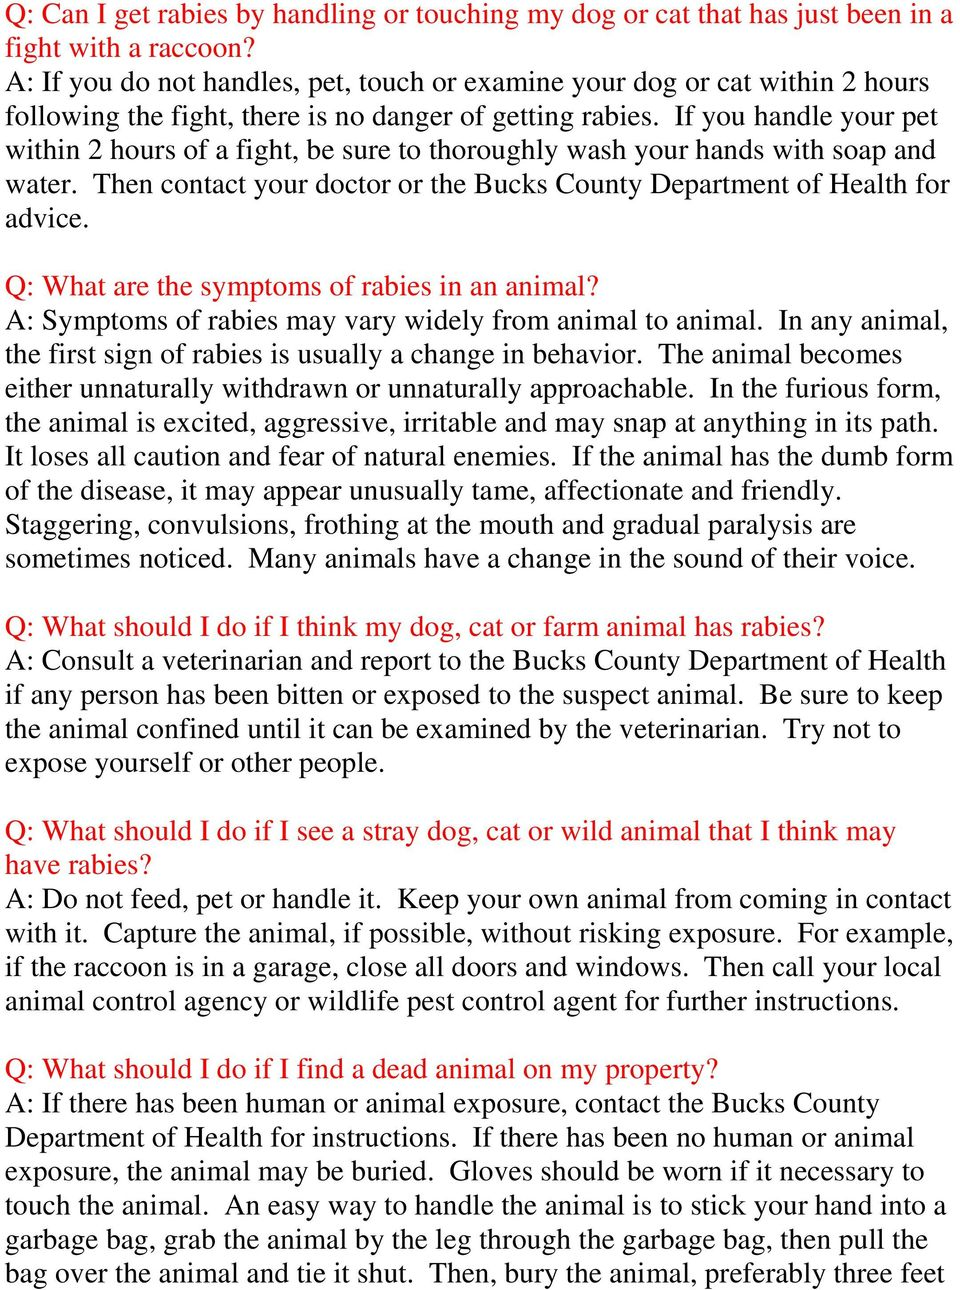 If you handle your pet within 2 hours of a fight, be sure to thoroughly wash your hands with soap and water. Then contact your doctor or the Bucks County Department of Health for advice.